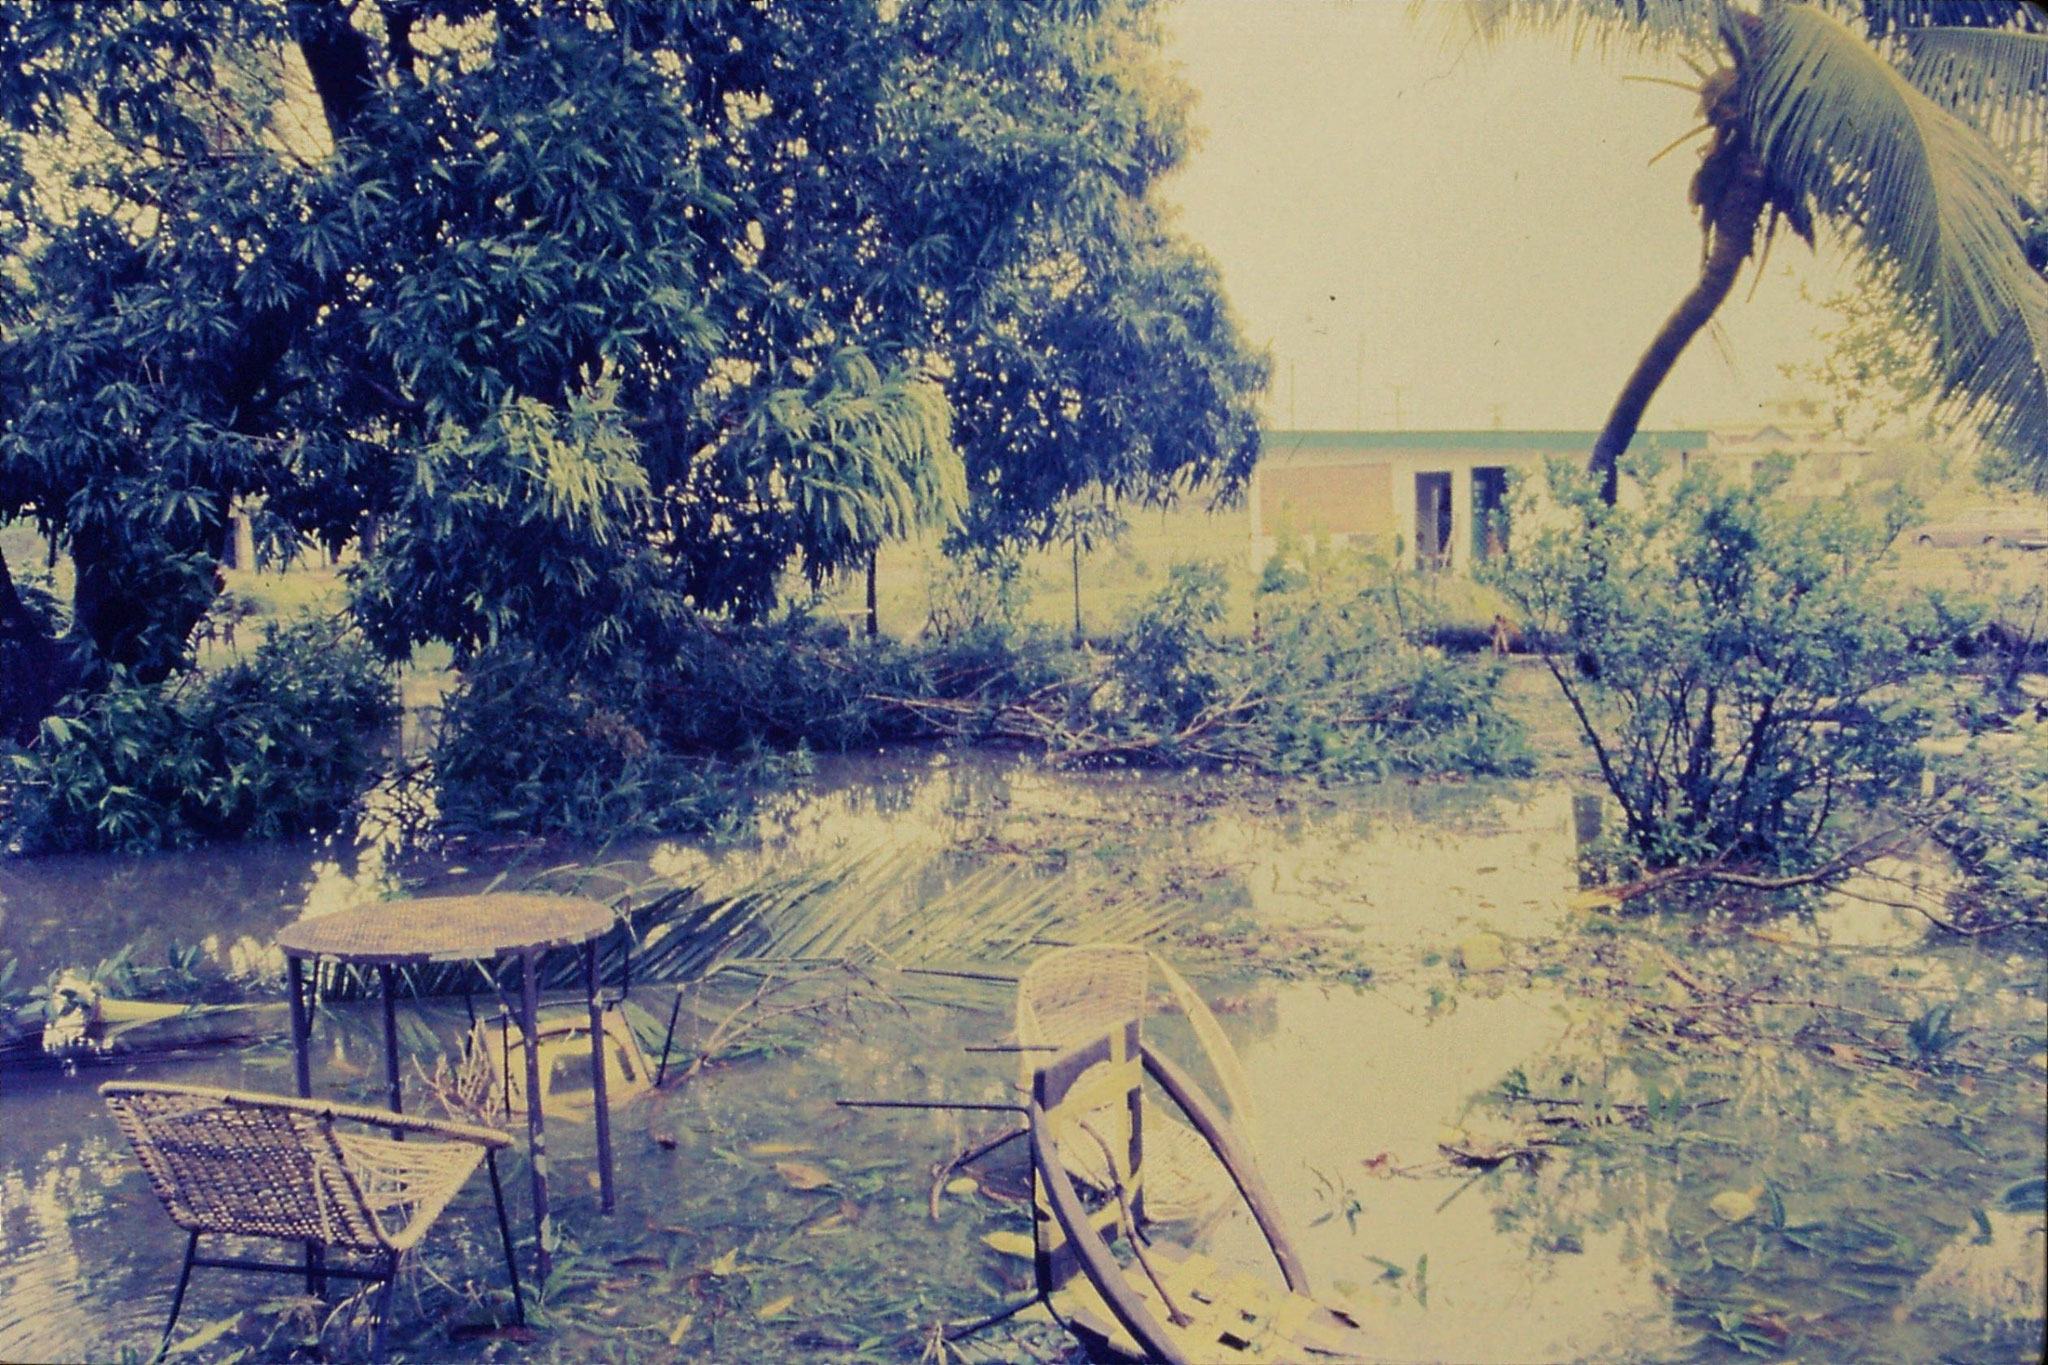 28/11/1990: 26: Fiji, hotel garden after Hurricane Sina